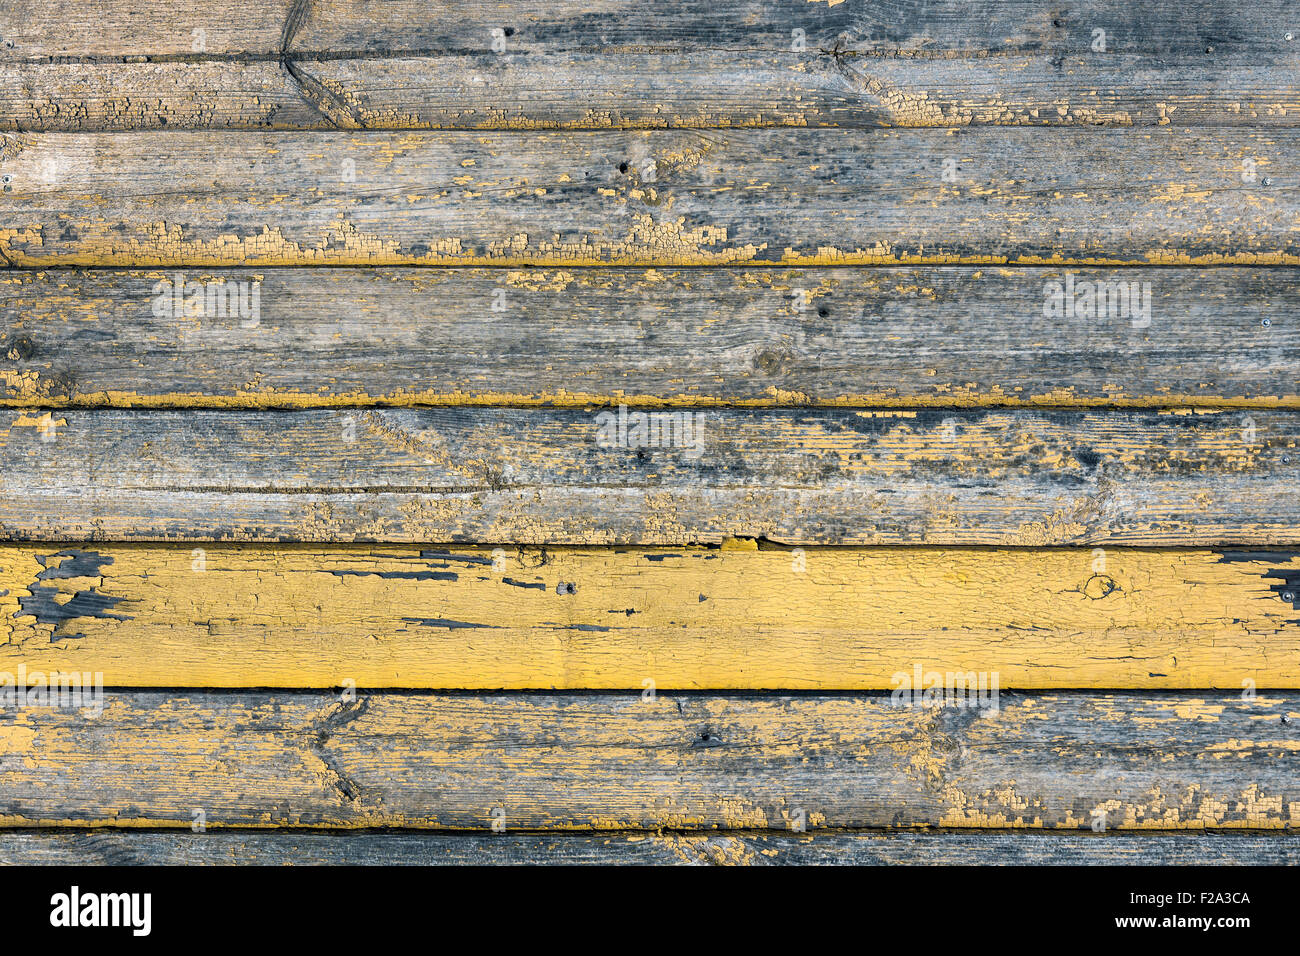 Old wood texture with weathered yellow paint - Stock Image